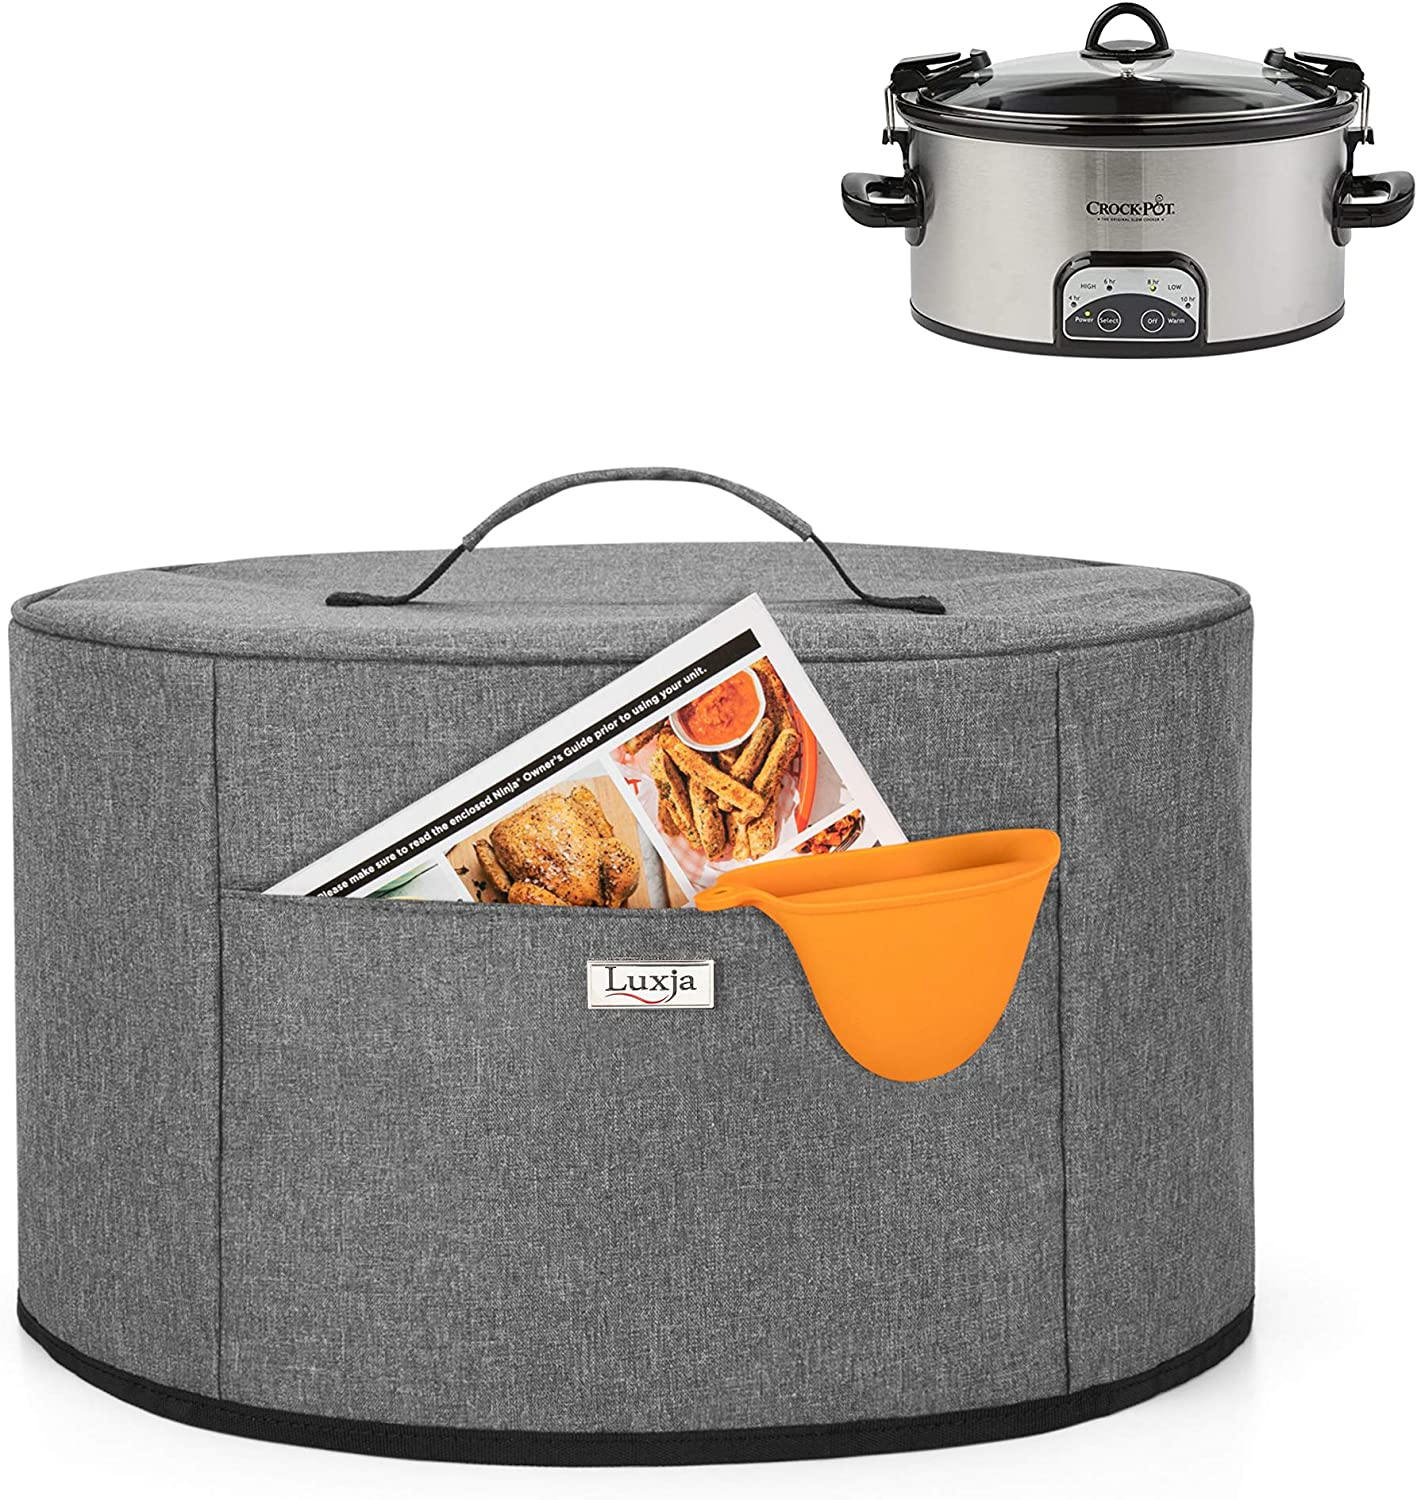 Luxja Slow Cooker Cover (Aluminum Foil Lining), Slow Cooker Dust Cover Fits for Most 6-8 Quart Oval Slow Cooker, Gray